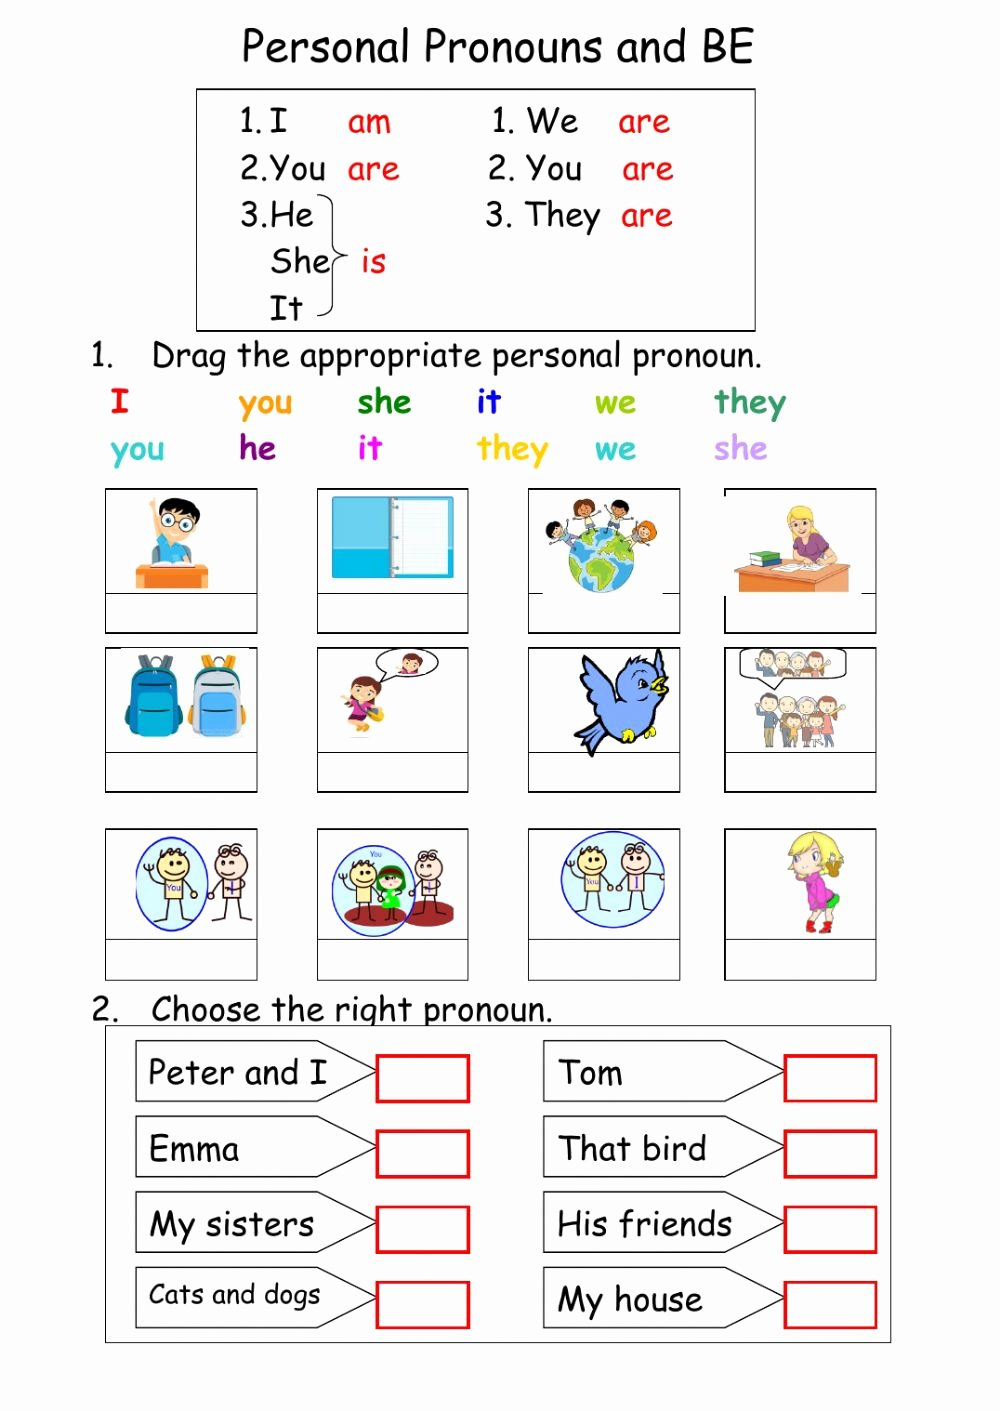 Personal Pronouns Worksheets for Preschoolers New Personal Pronouns and Interactive Worksheet English